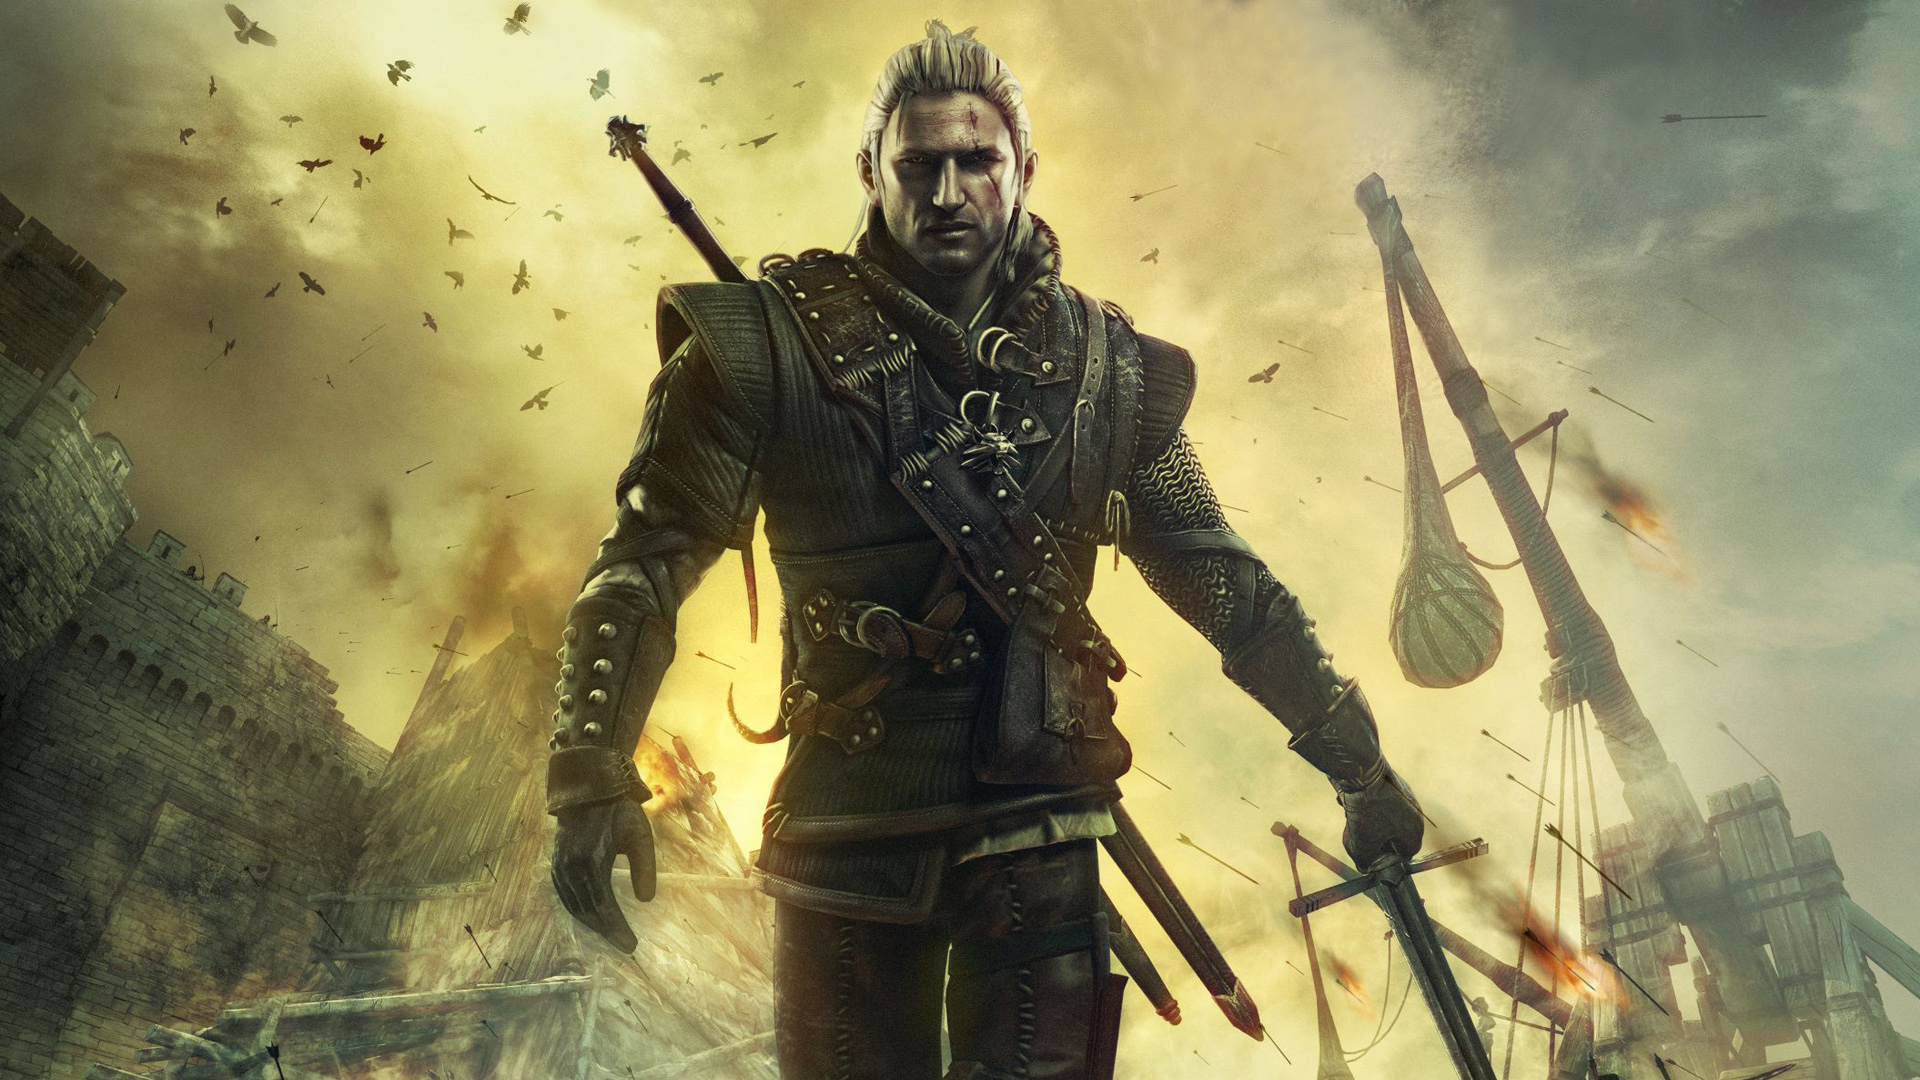 The Witcher 2 Assassins Of Kings Wallpapers Pictures Images 1920x1080